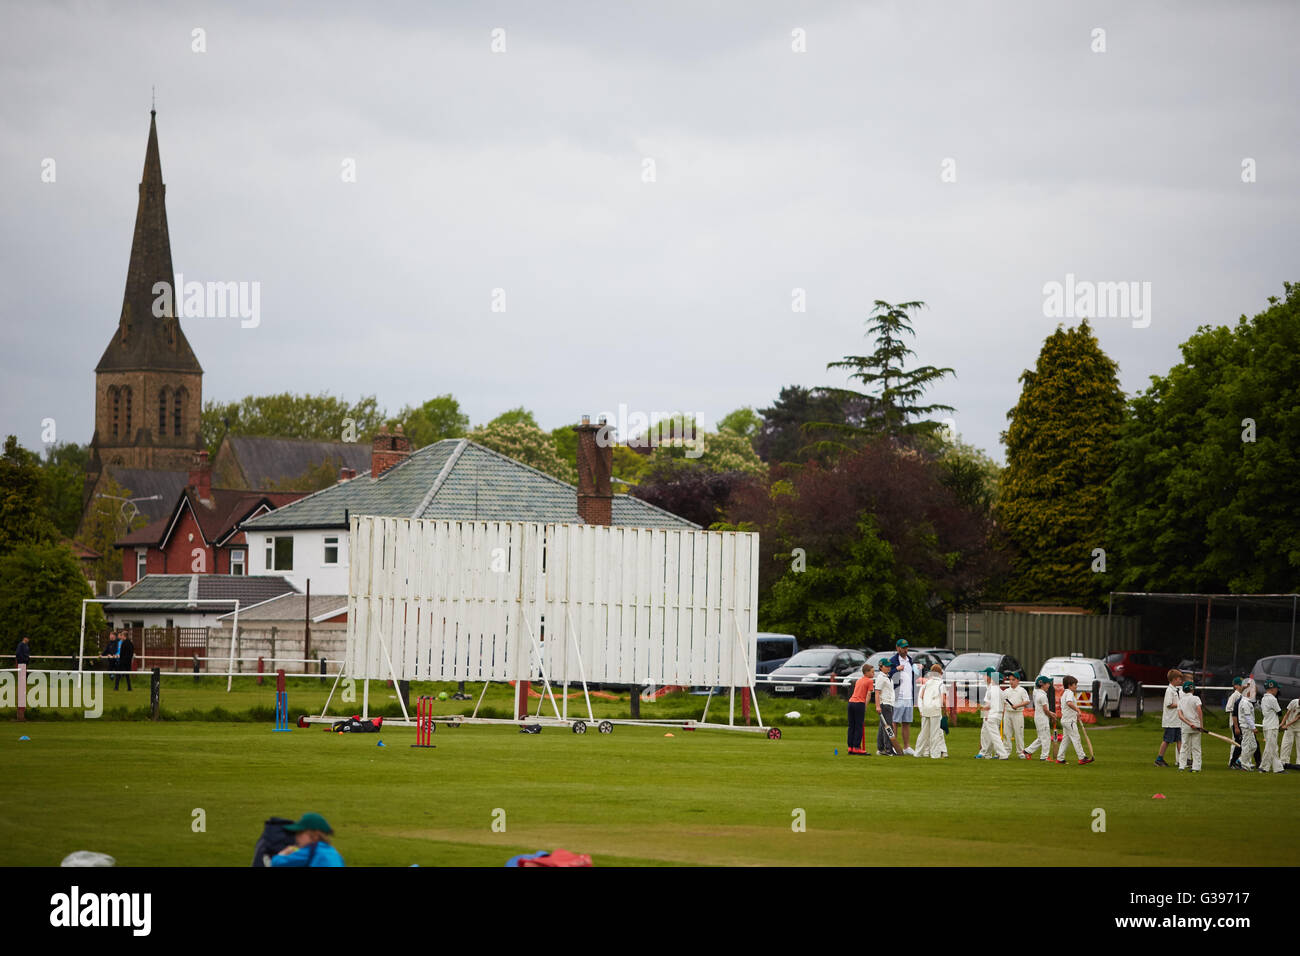 Pontoon cricket club  Sports grounds community Sporting sports healthy health active activity exercise sportsmanship - Stock Image